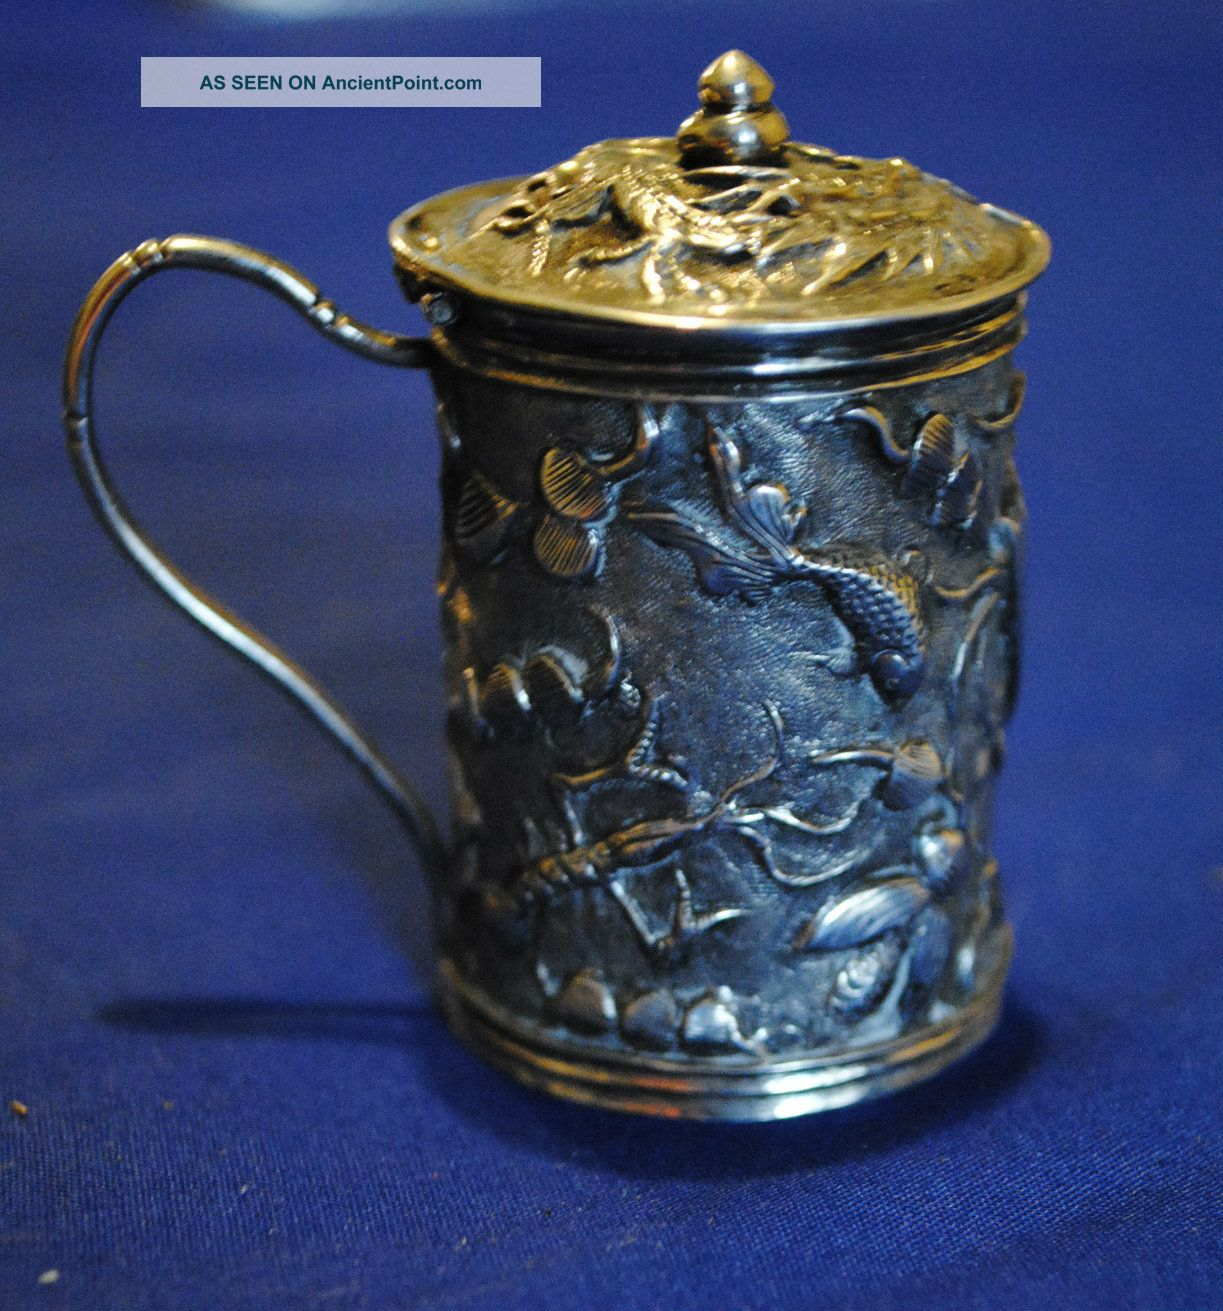 Fine Chinese Export Repousse Sterling Silver Mustard Pot Marked Ho,  Chinese Mark Mustard Pots photo